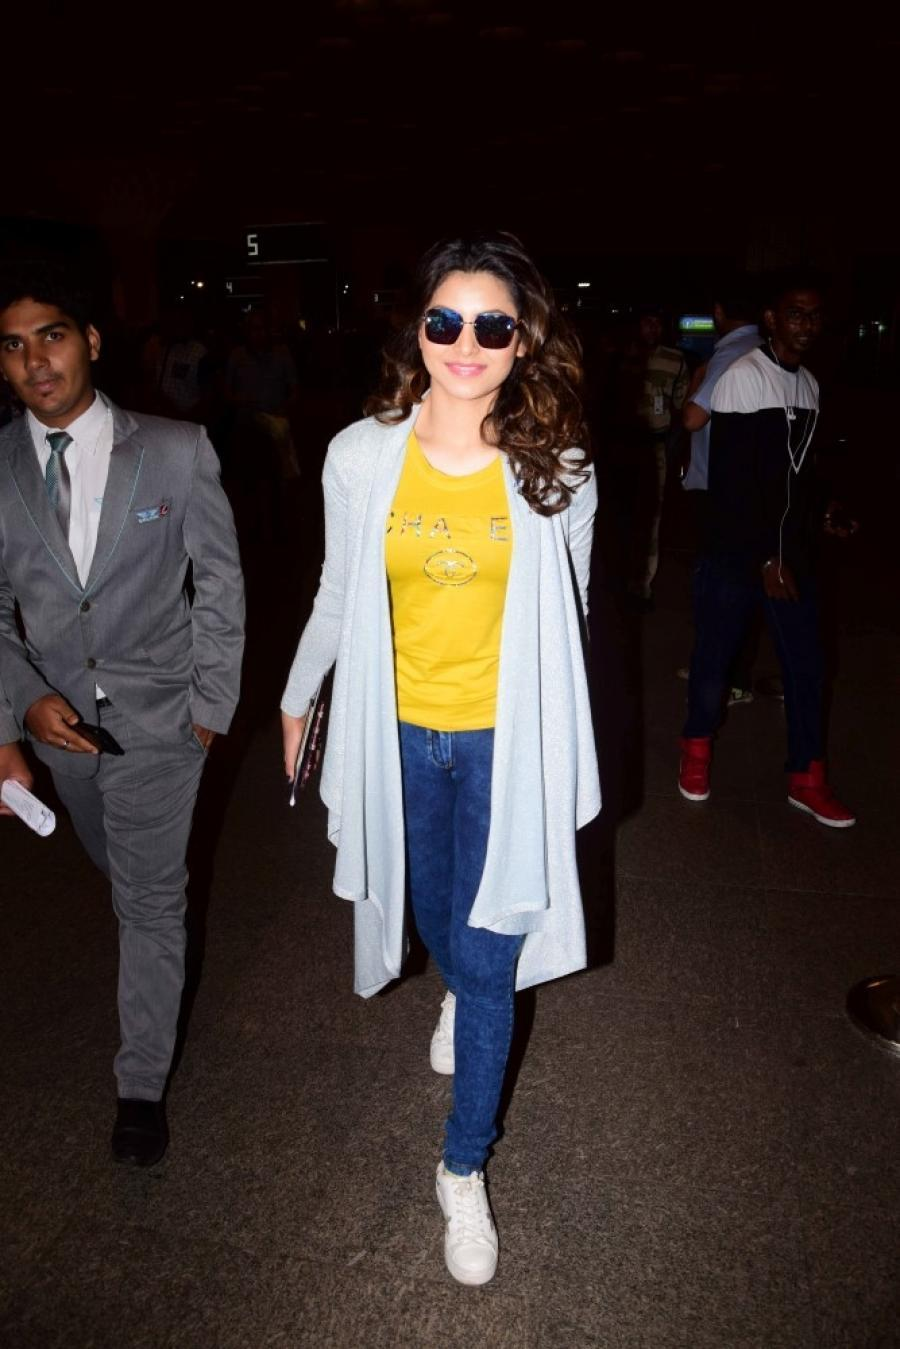 Bollywood Model Urvashi Rautela Spotted At Mumbai Airport